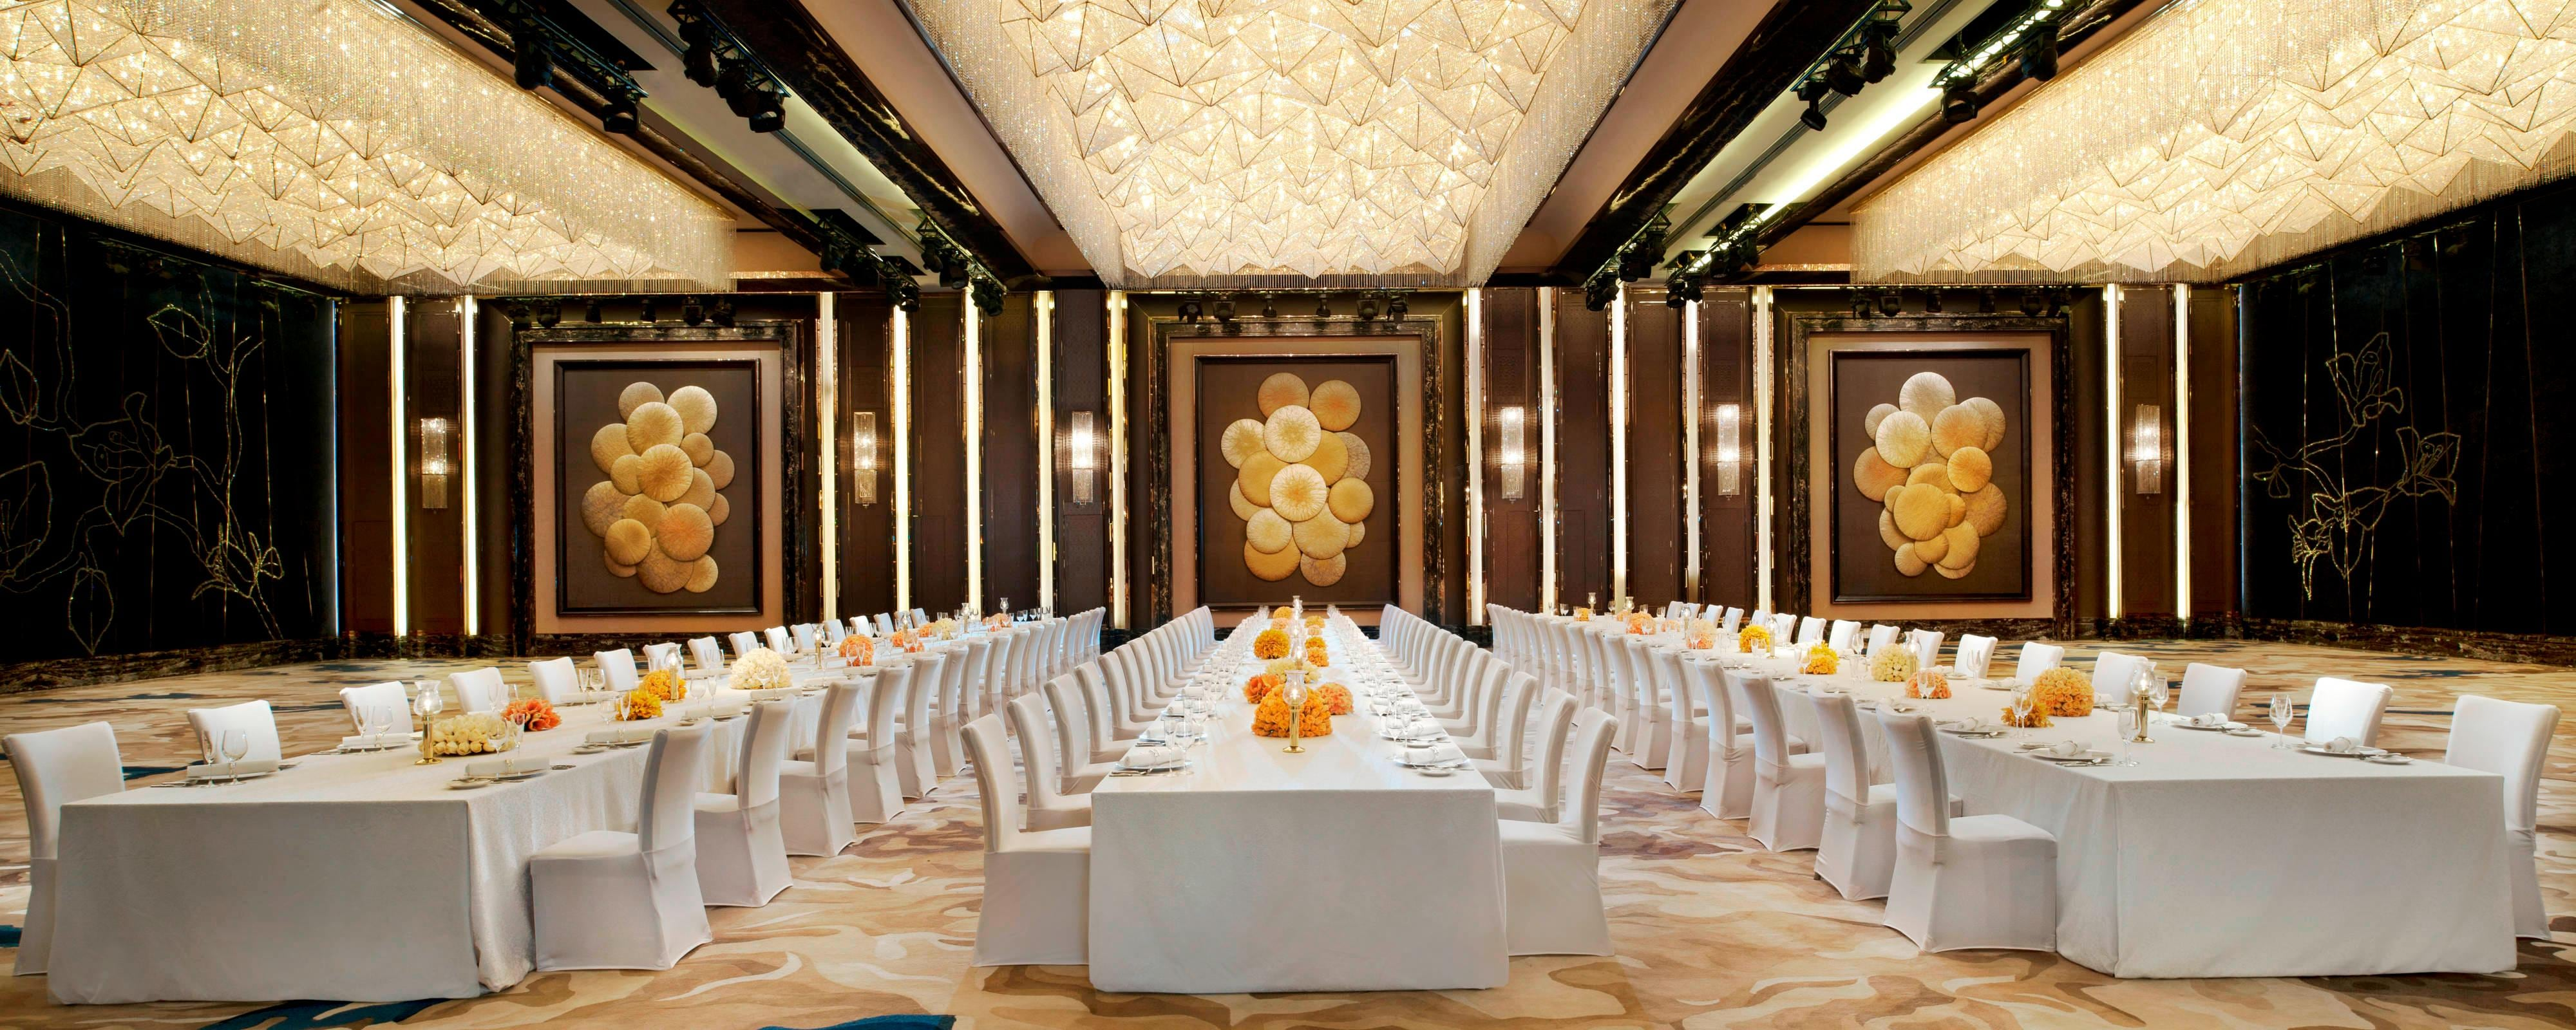 Meeting Room - Western Banquet